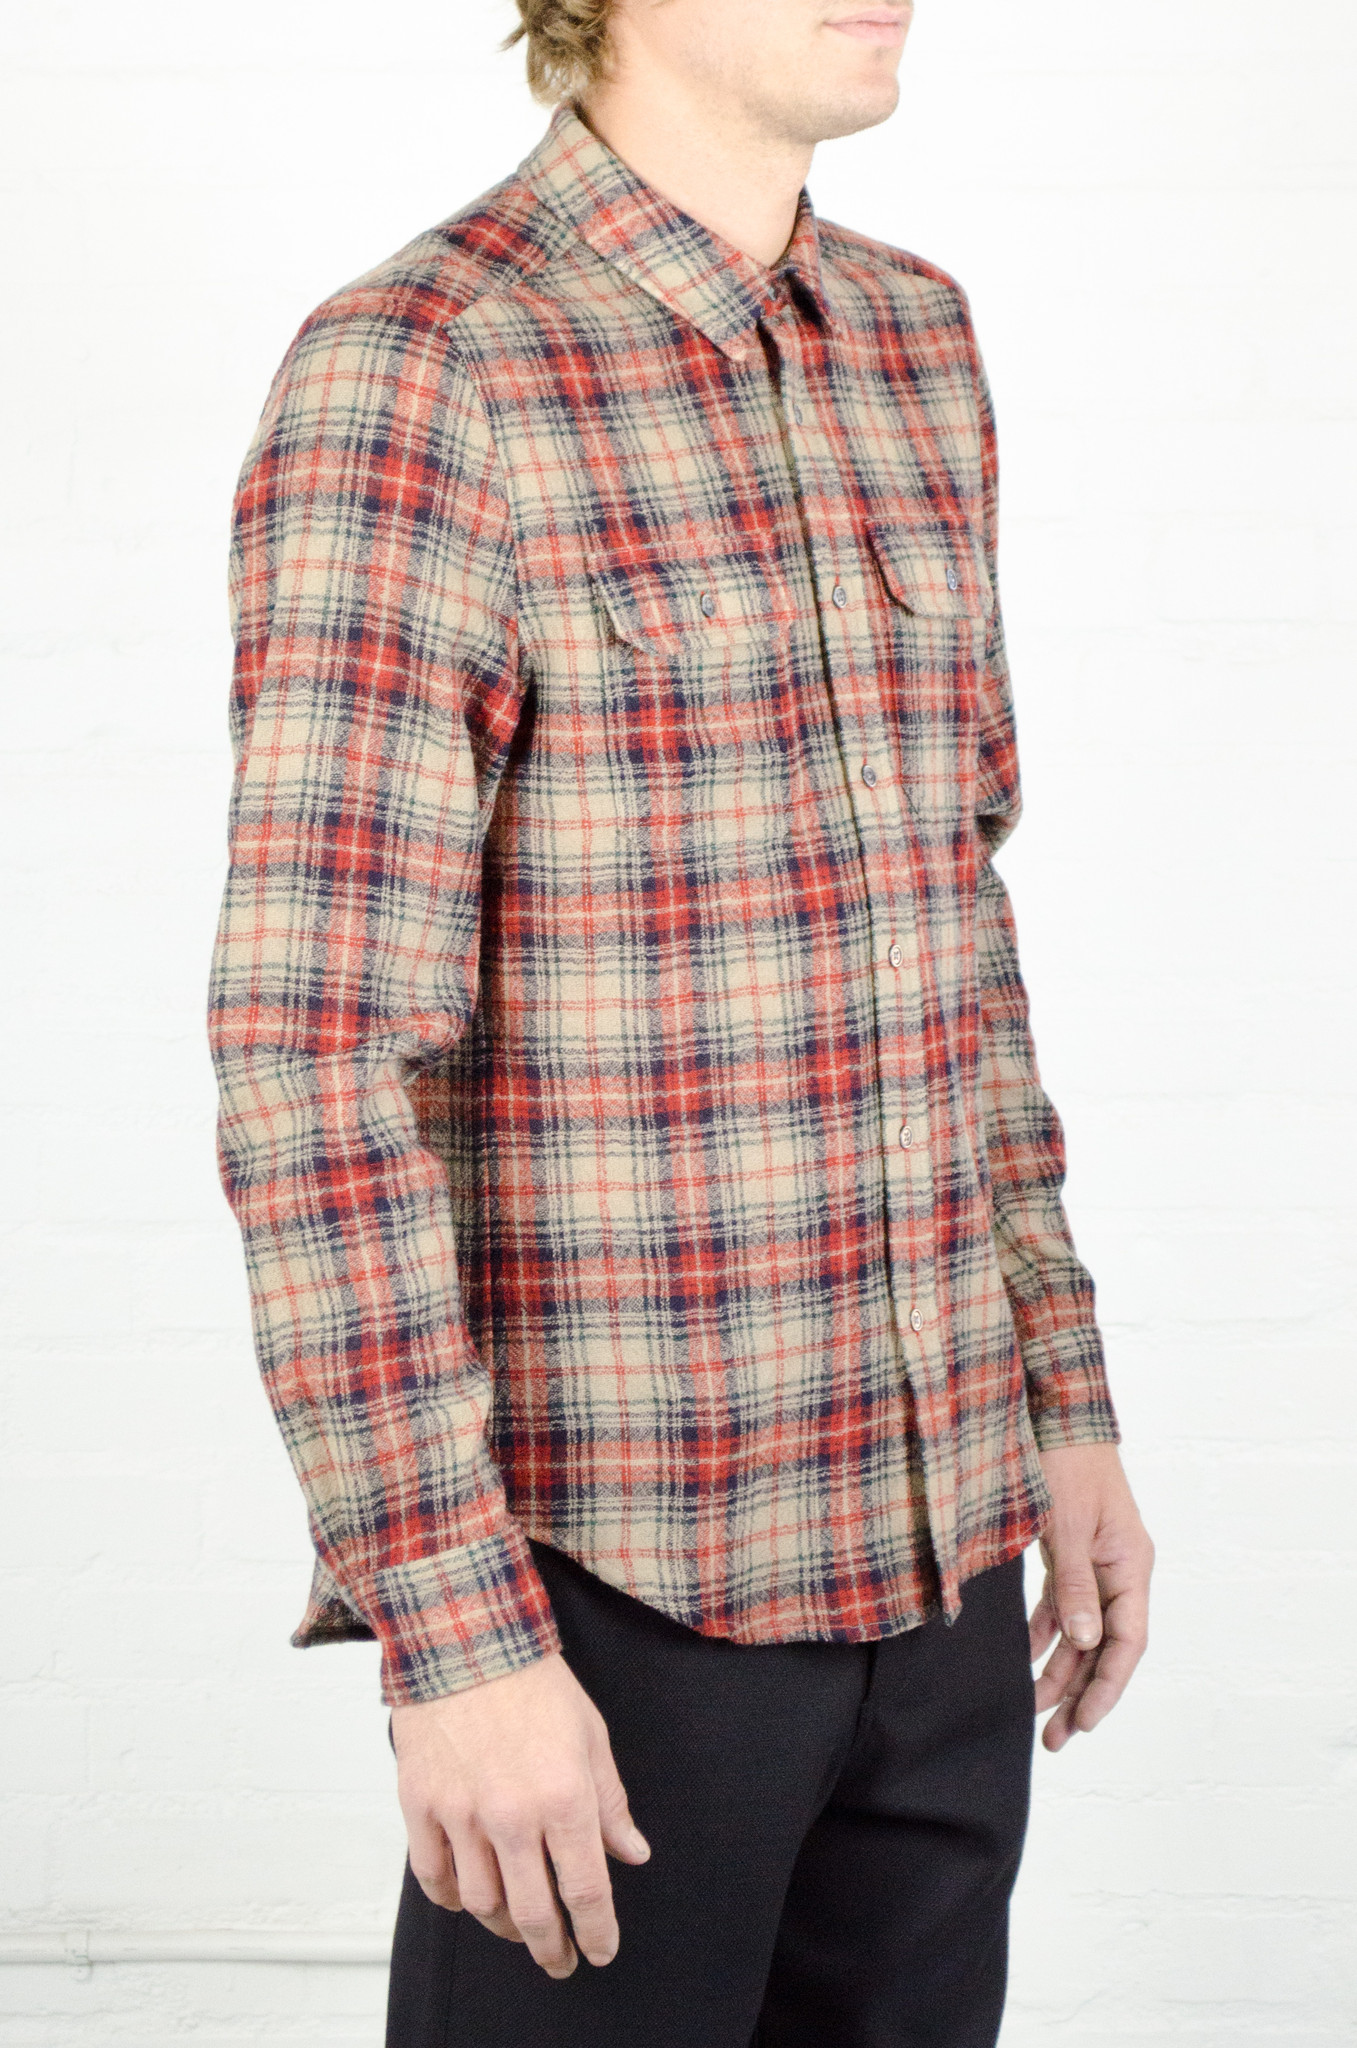 Men's Odin Worsted Wool Red and Tan Plaid Shirt | Garmentory